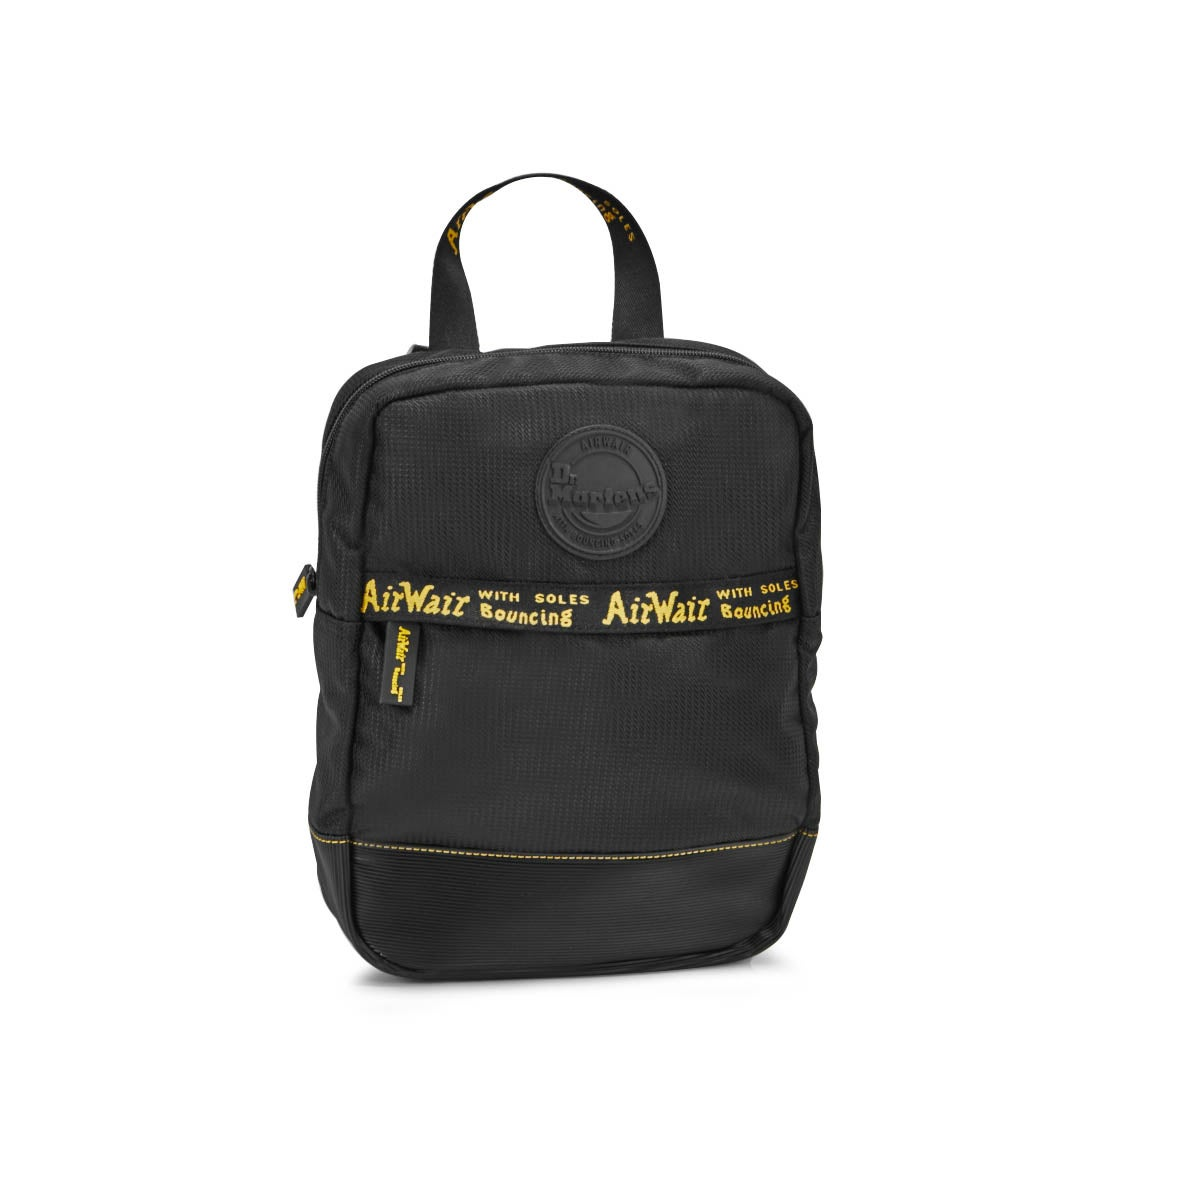 Dr Martens Small blk polyester backpack